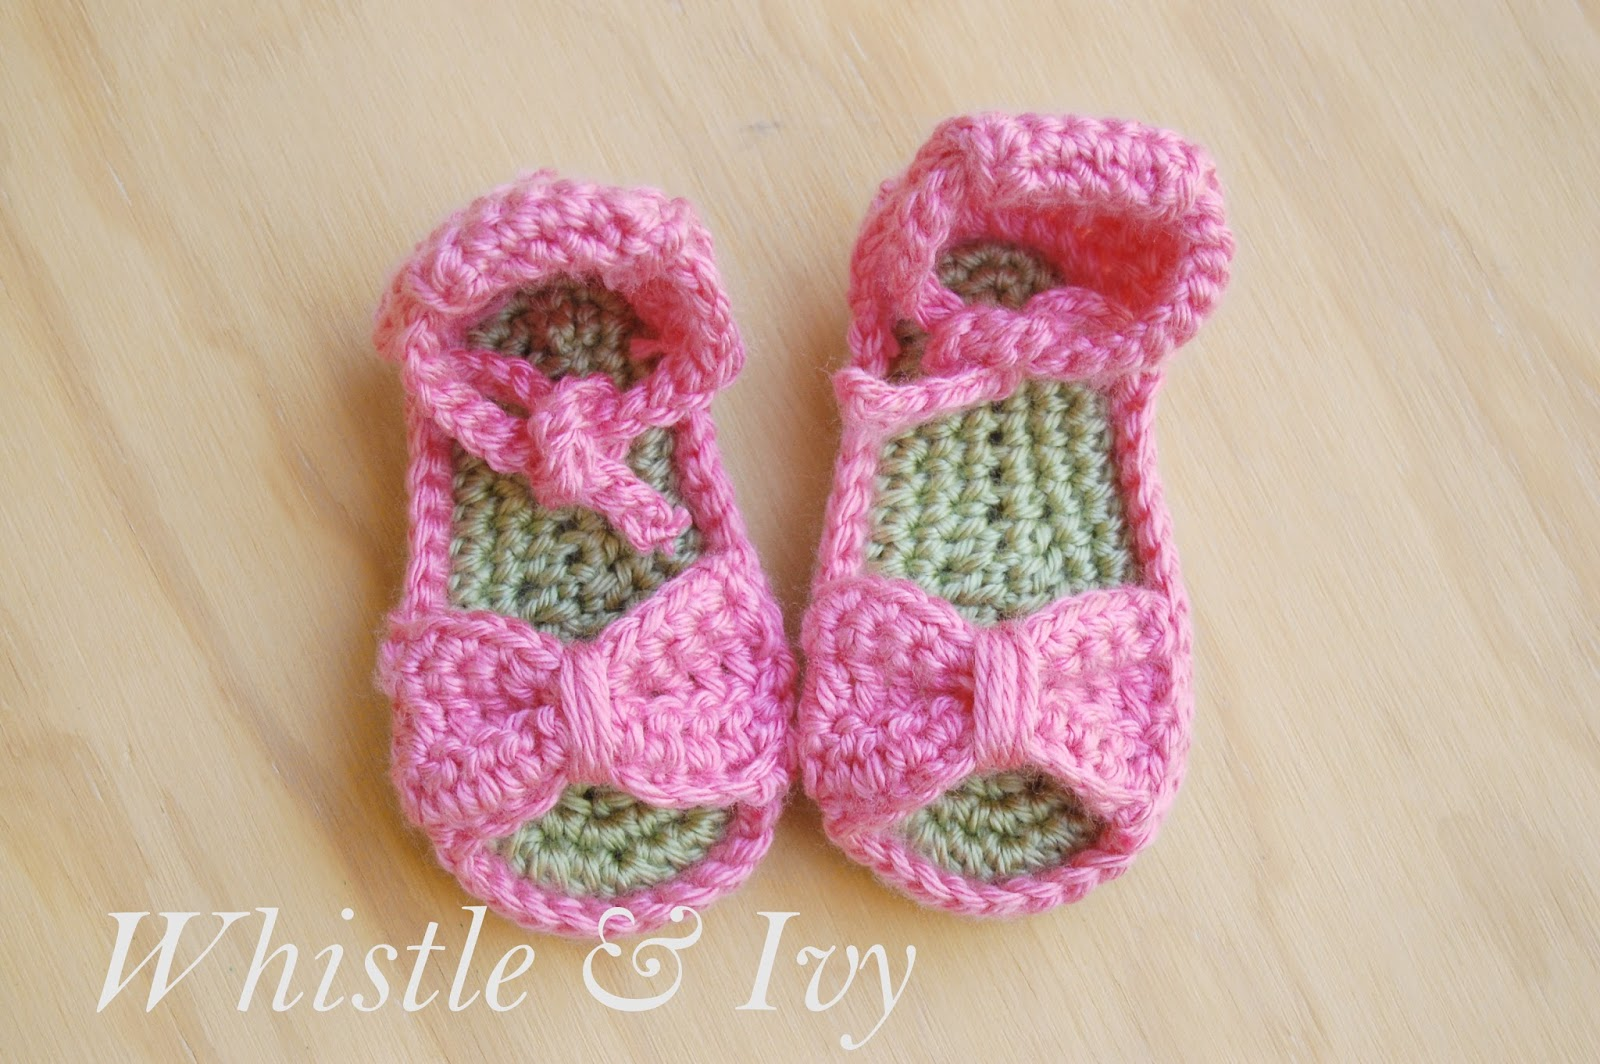 Bitty Bow Baby Sandals Pattern - Whistle and Ivy